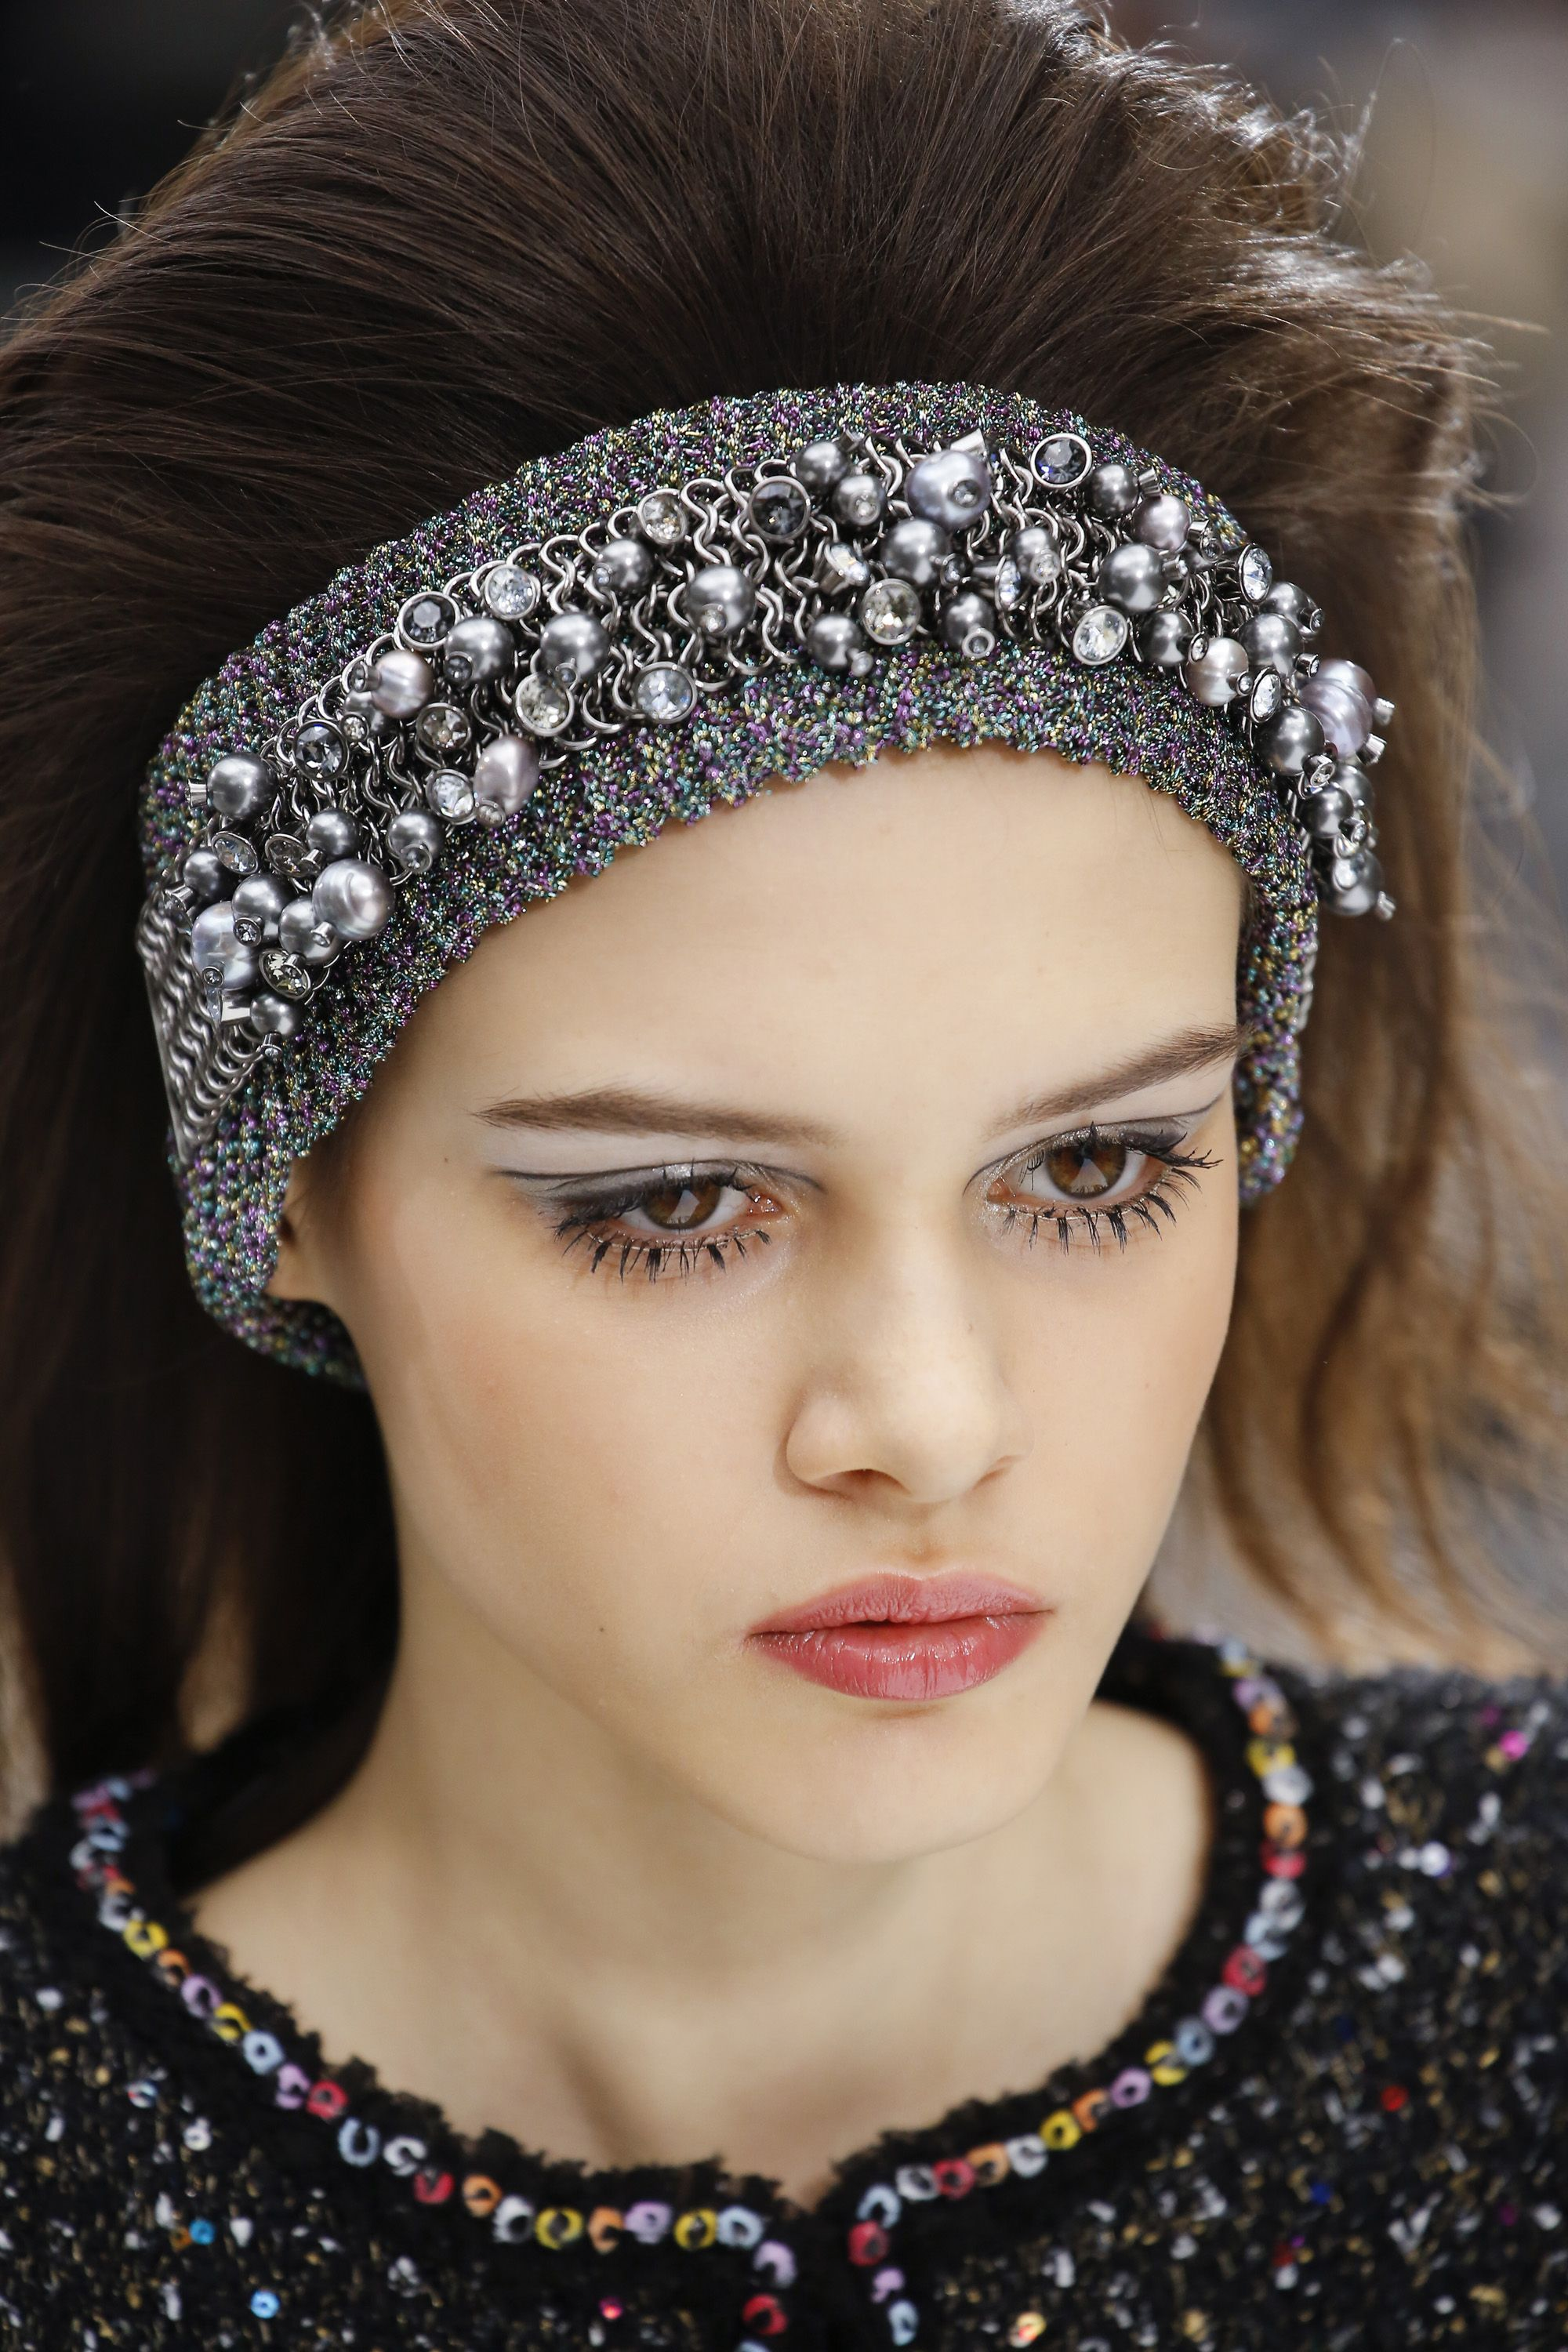 Autumn/Winter 2017 Backstage Beauty Chanel fall 2017